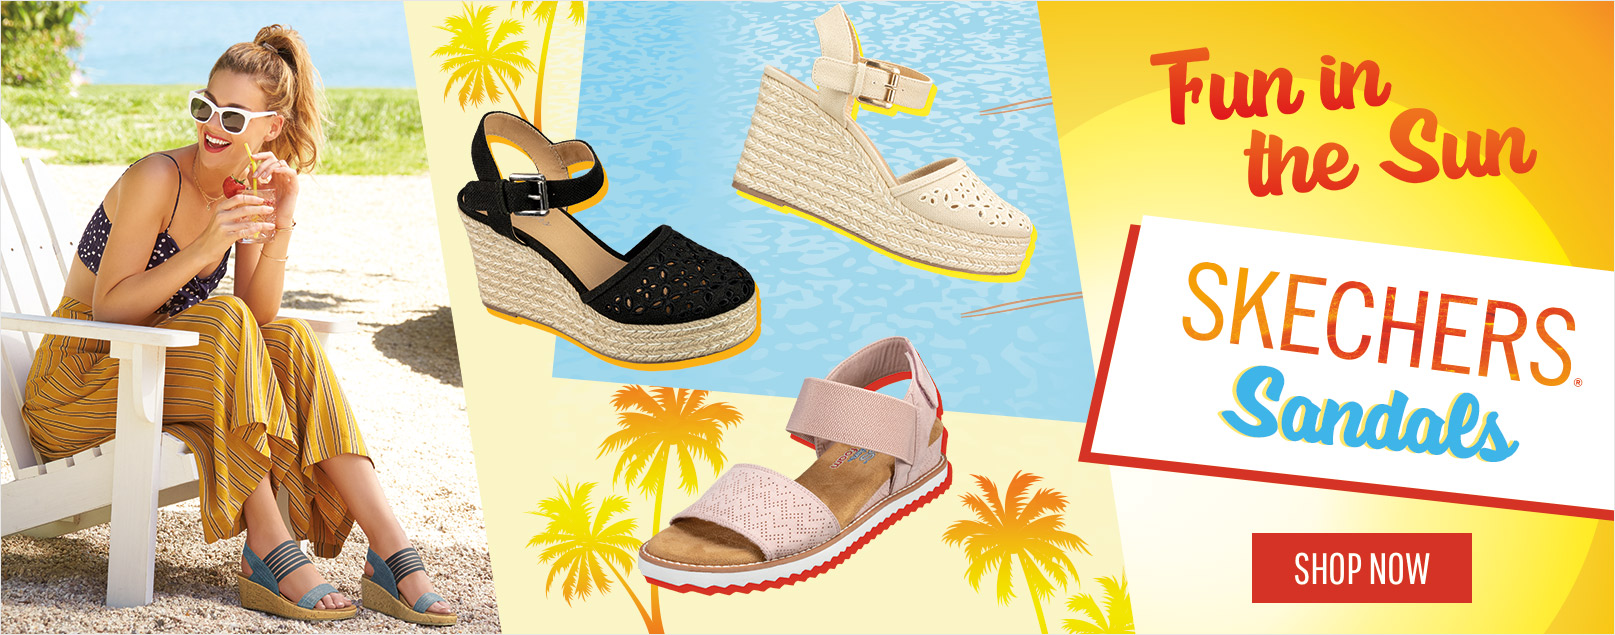 ae59b396a61e Have fun in the sun with the sandal collection by Skechers Cali. Sandal  looks from